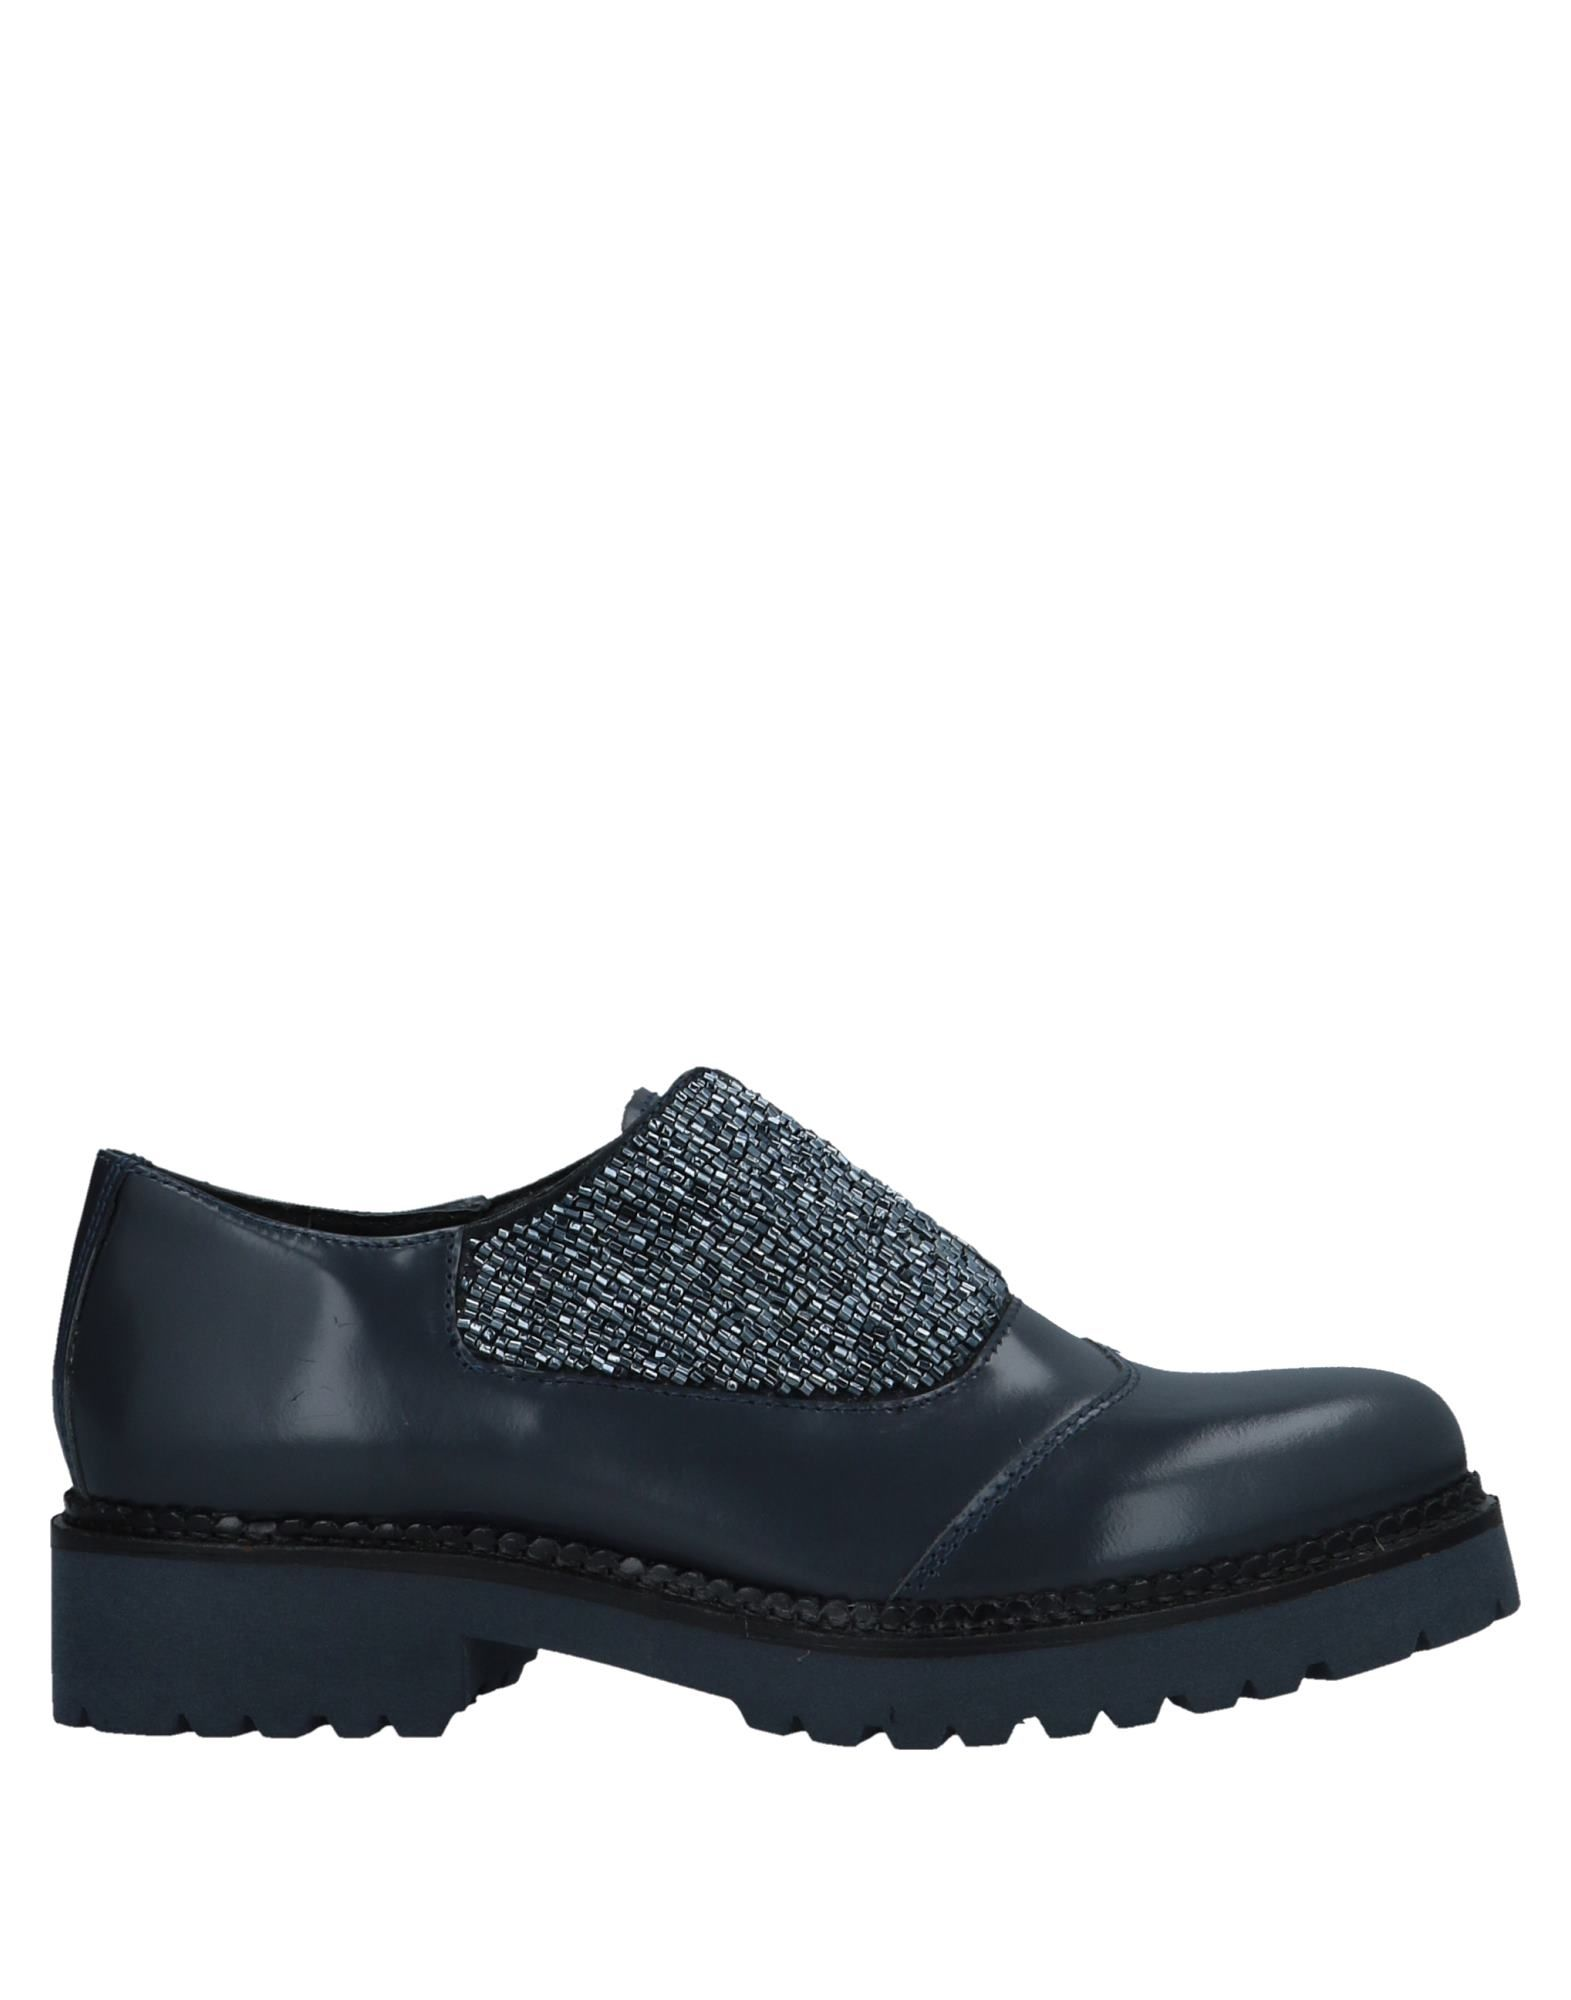 Apepazza Loafers Loafers - Women Apepazza Loafers Apepazza online on  United Kingdom - 11509232FO 8d2226